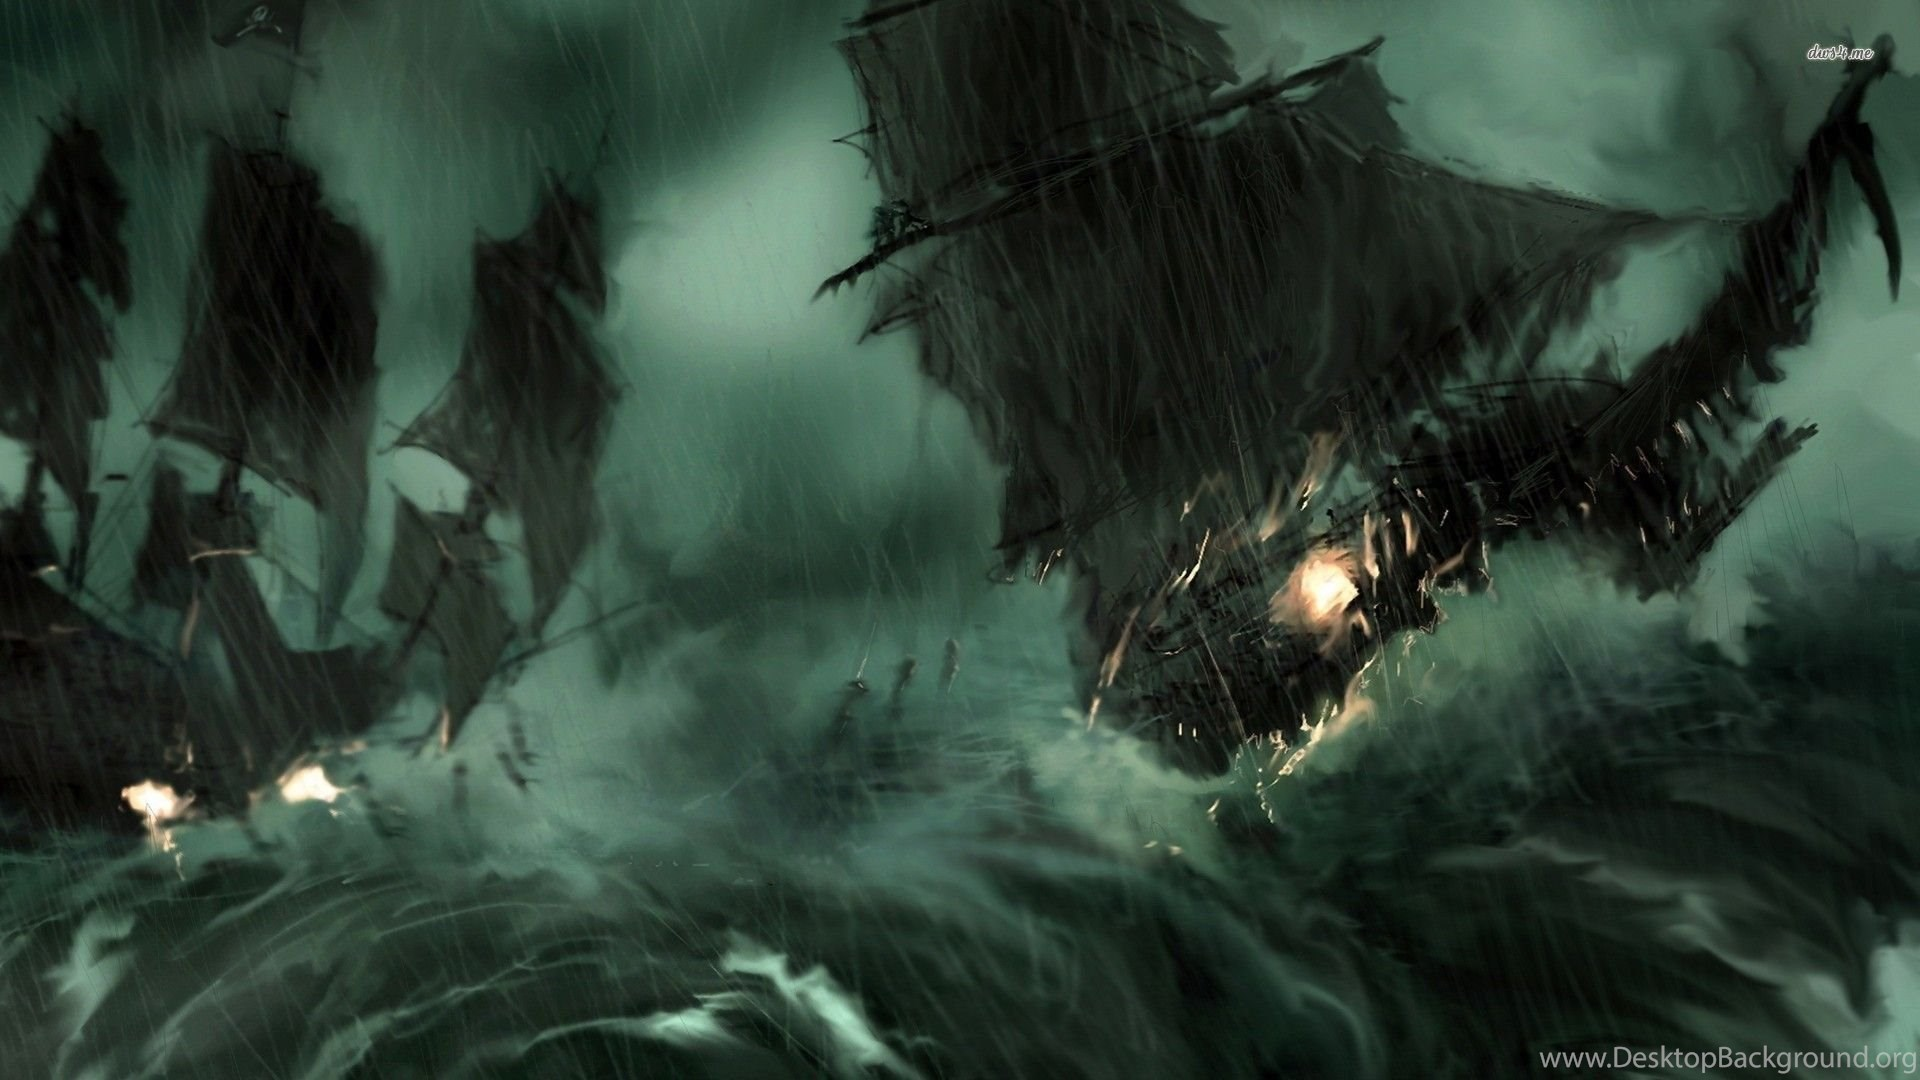 pirate ship during the storm wallpapers fantasy wallpapers desktop